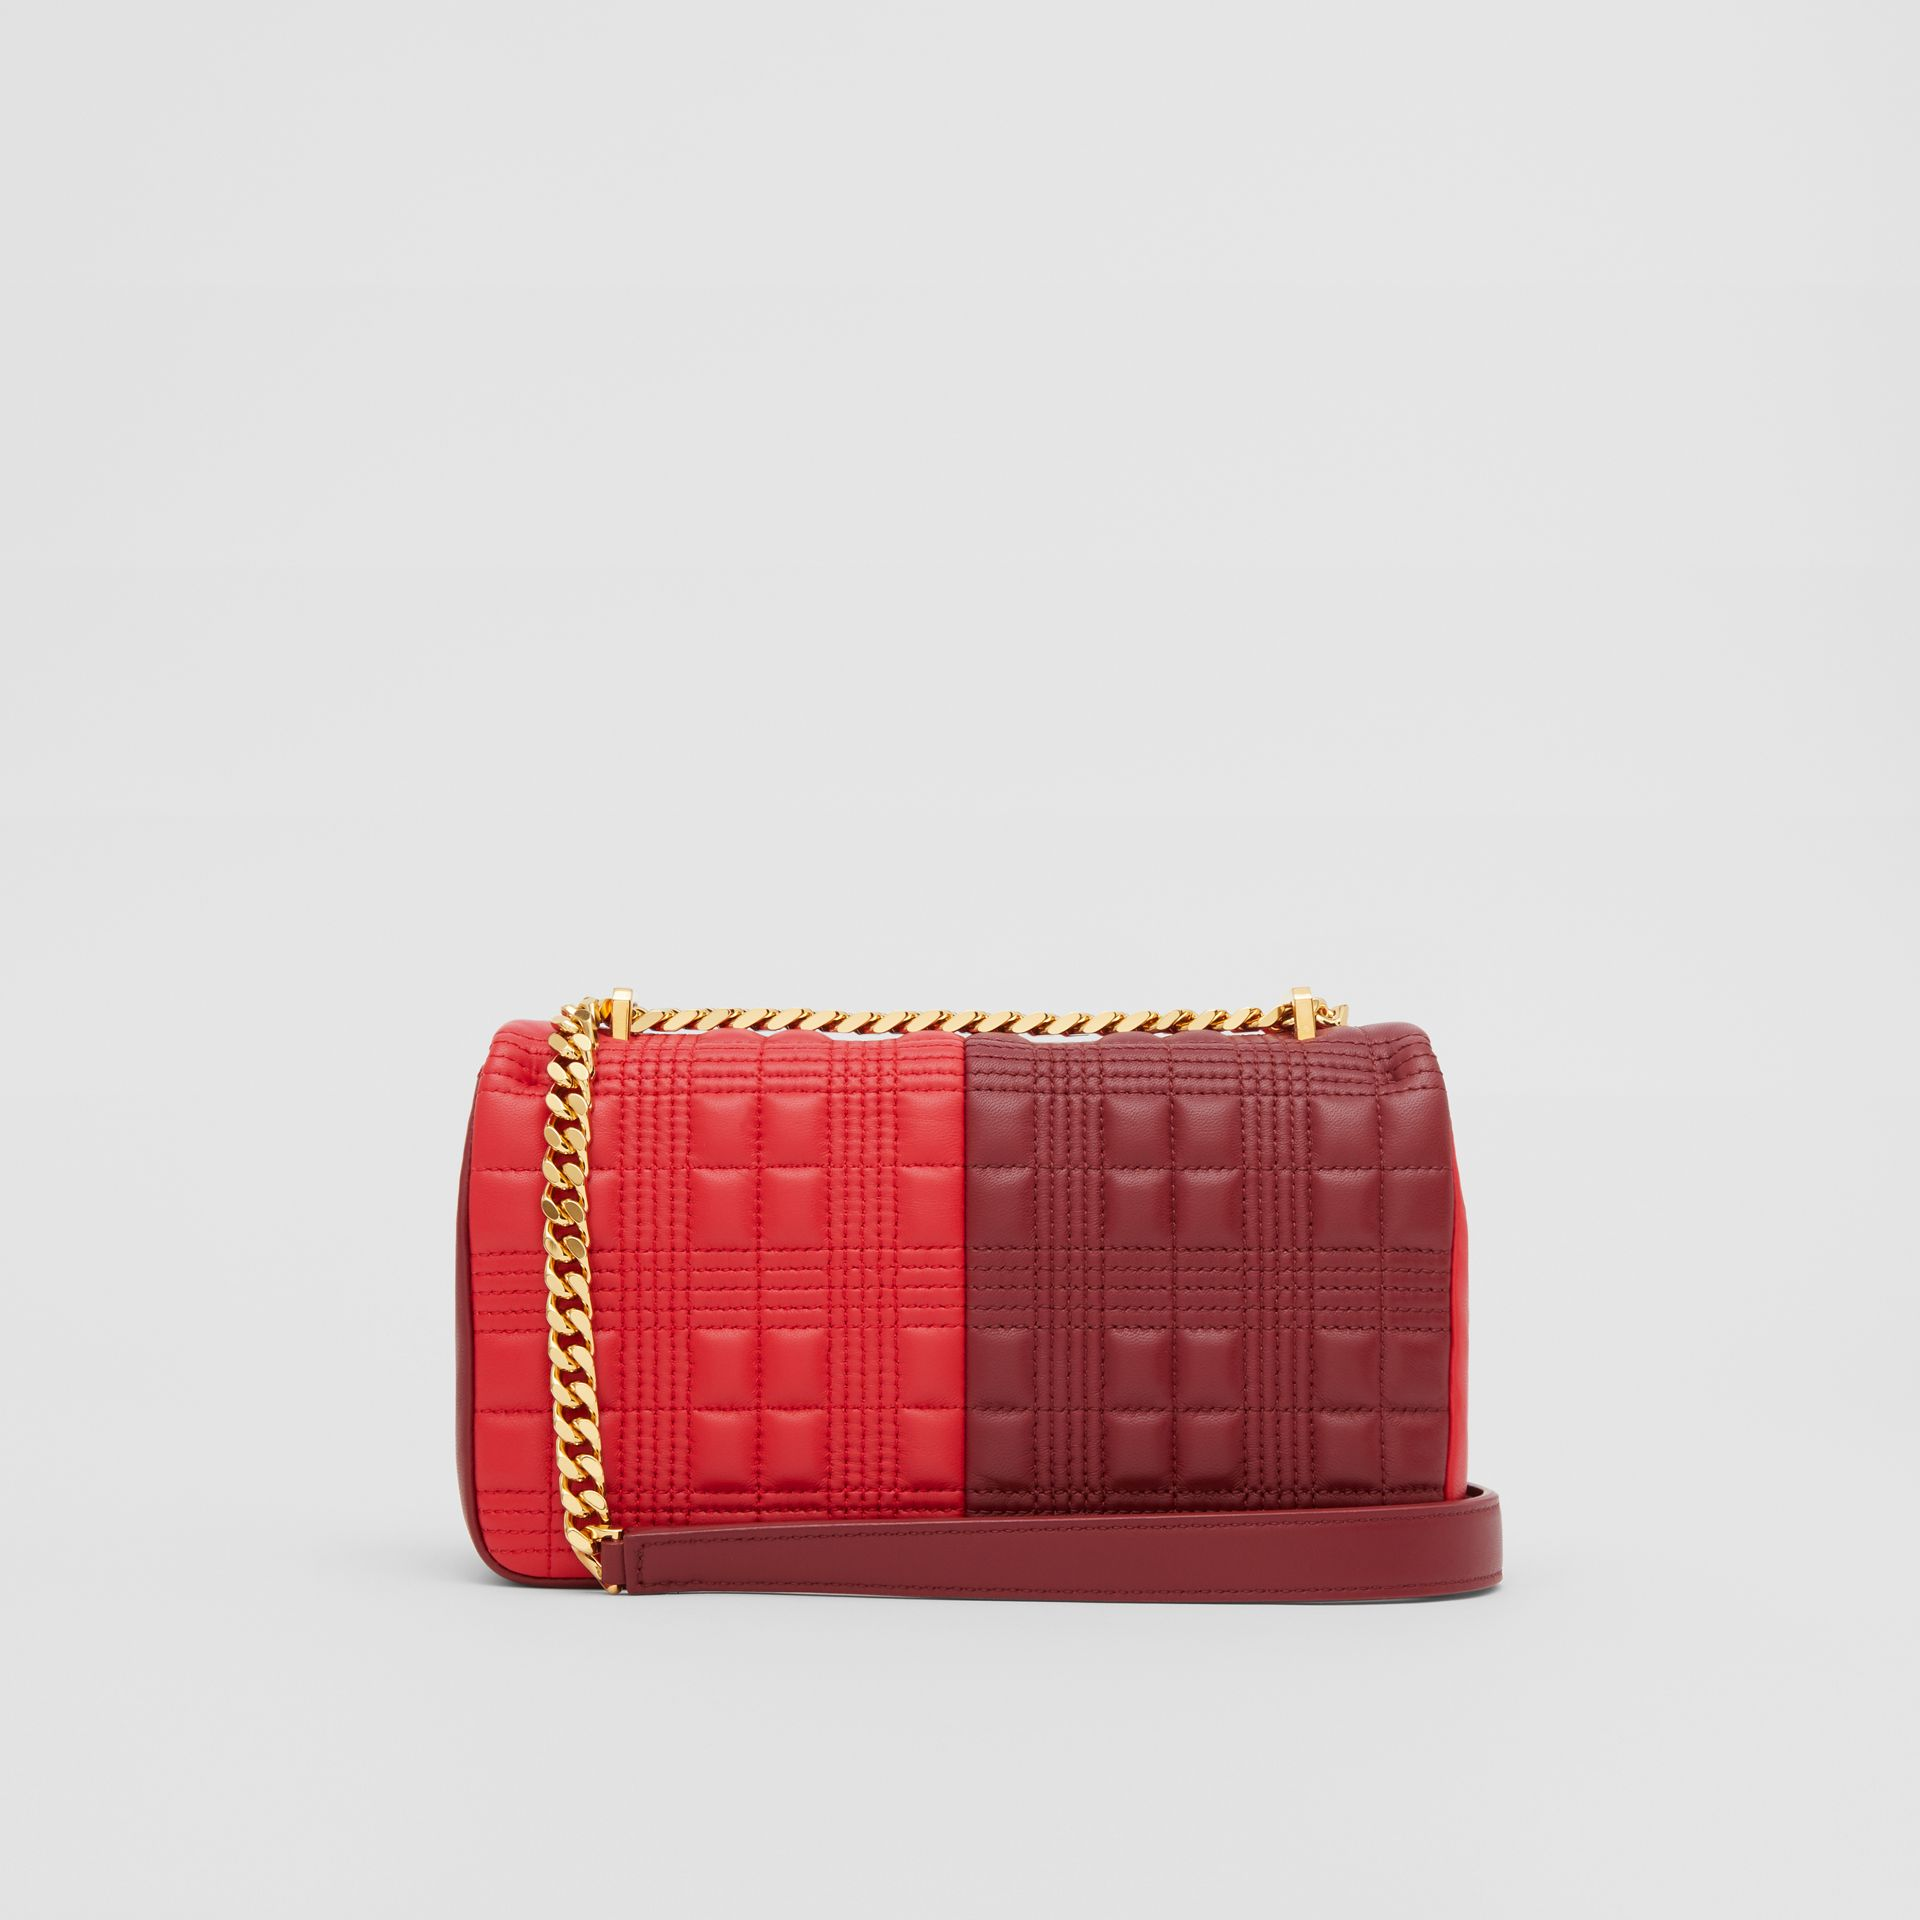 Small Quilted Colour Block Lambskin Lola Bag in Bright Red/burgundy - Women | Burberry - gallery image 7